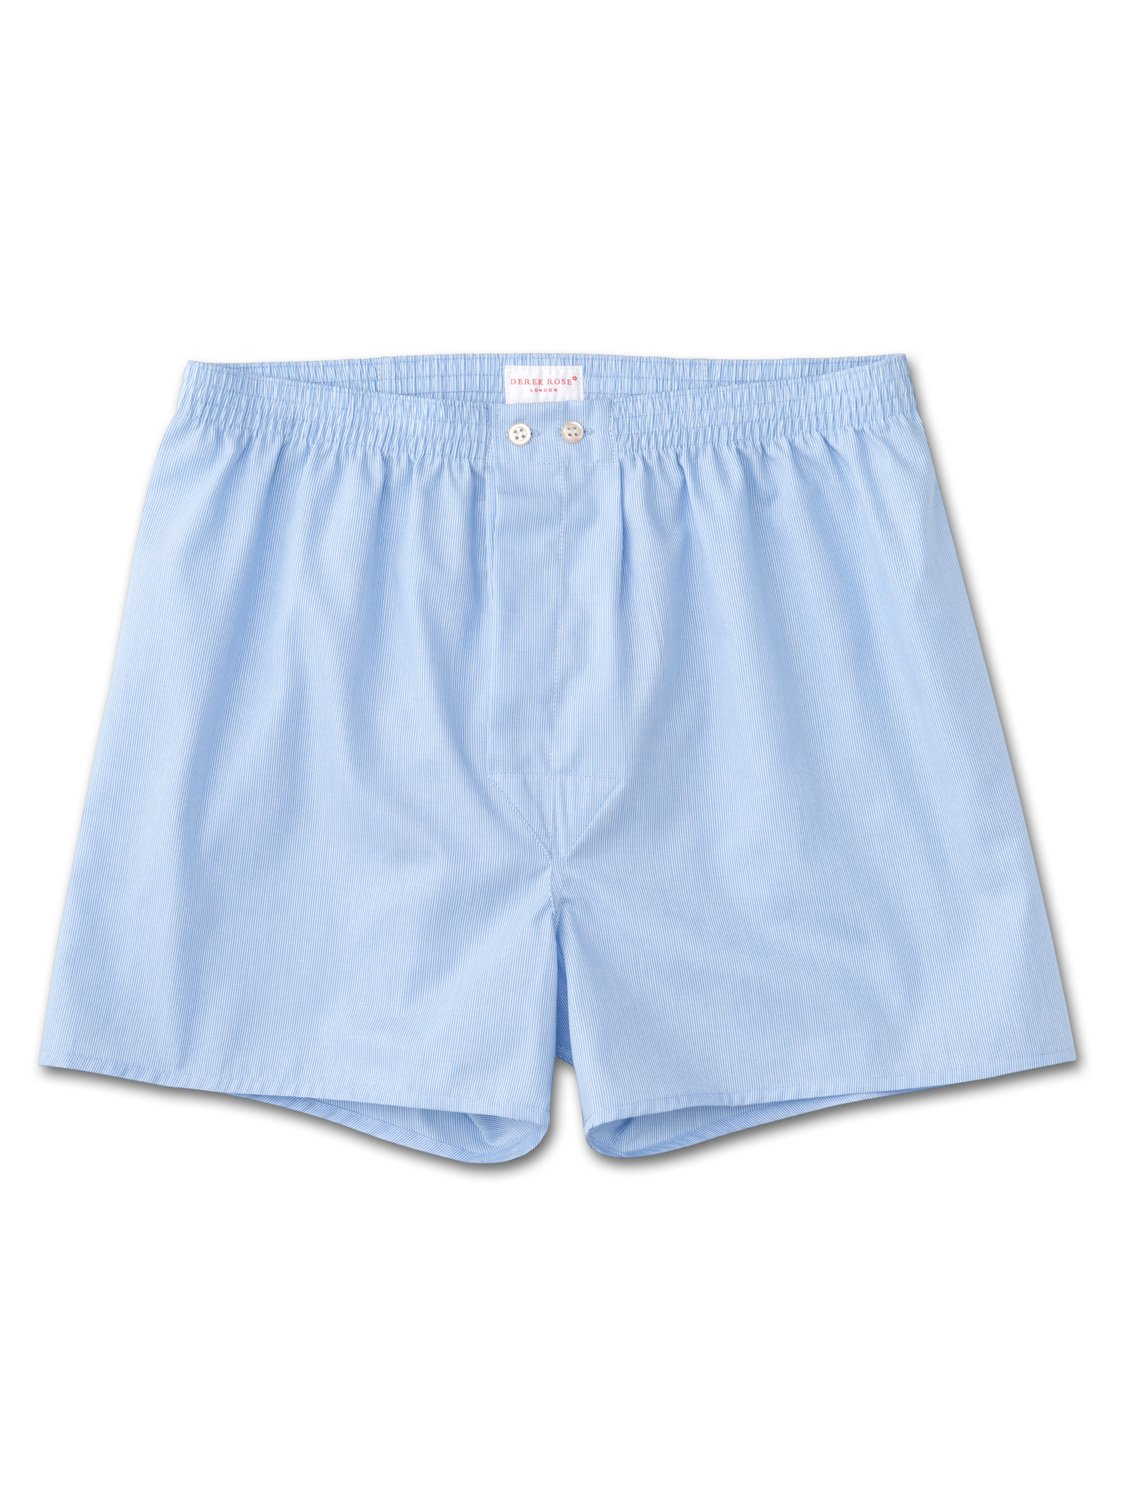 Men's Classic Fit Boxer Shorts James Pure Cotton Stripe Blue